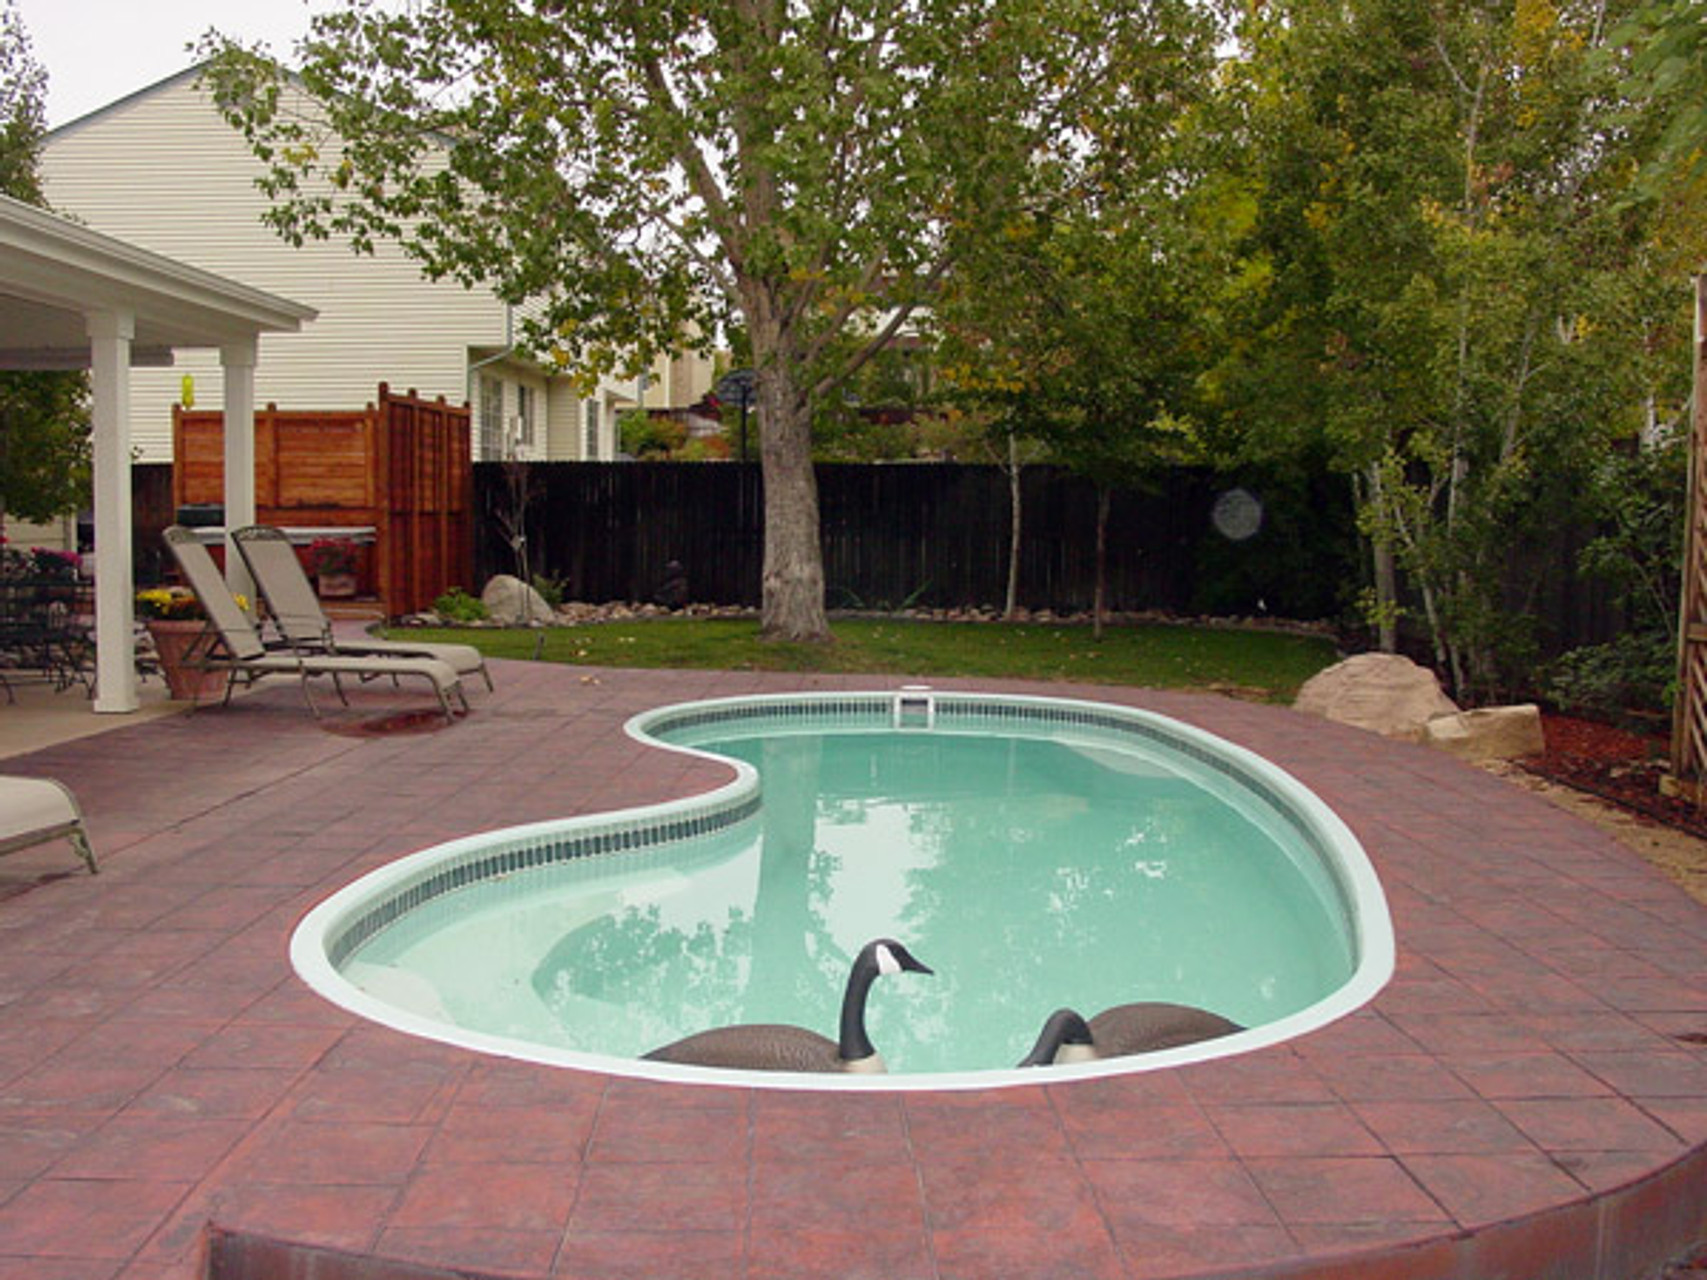 How to get rid of geese in backyard pools bird b gone inc - Duck repellent for swimming pools ...